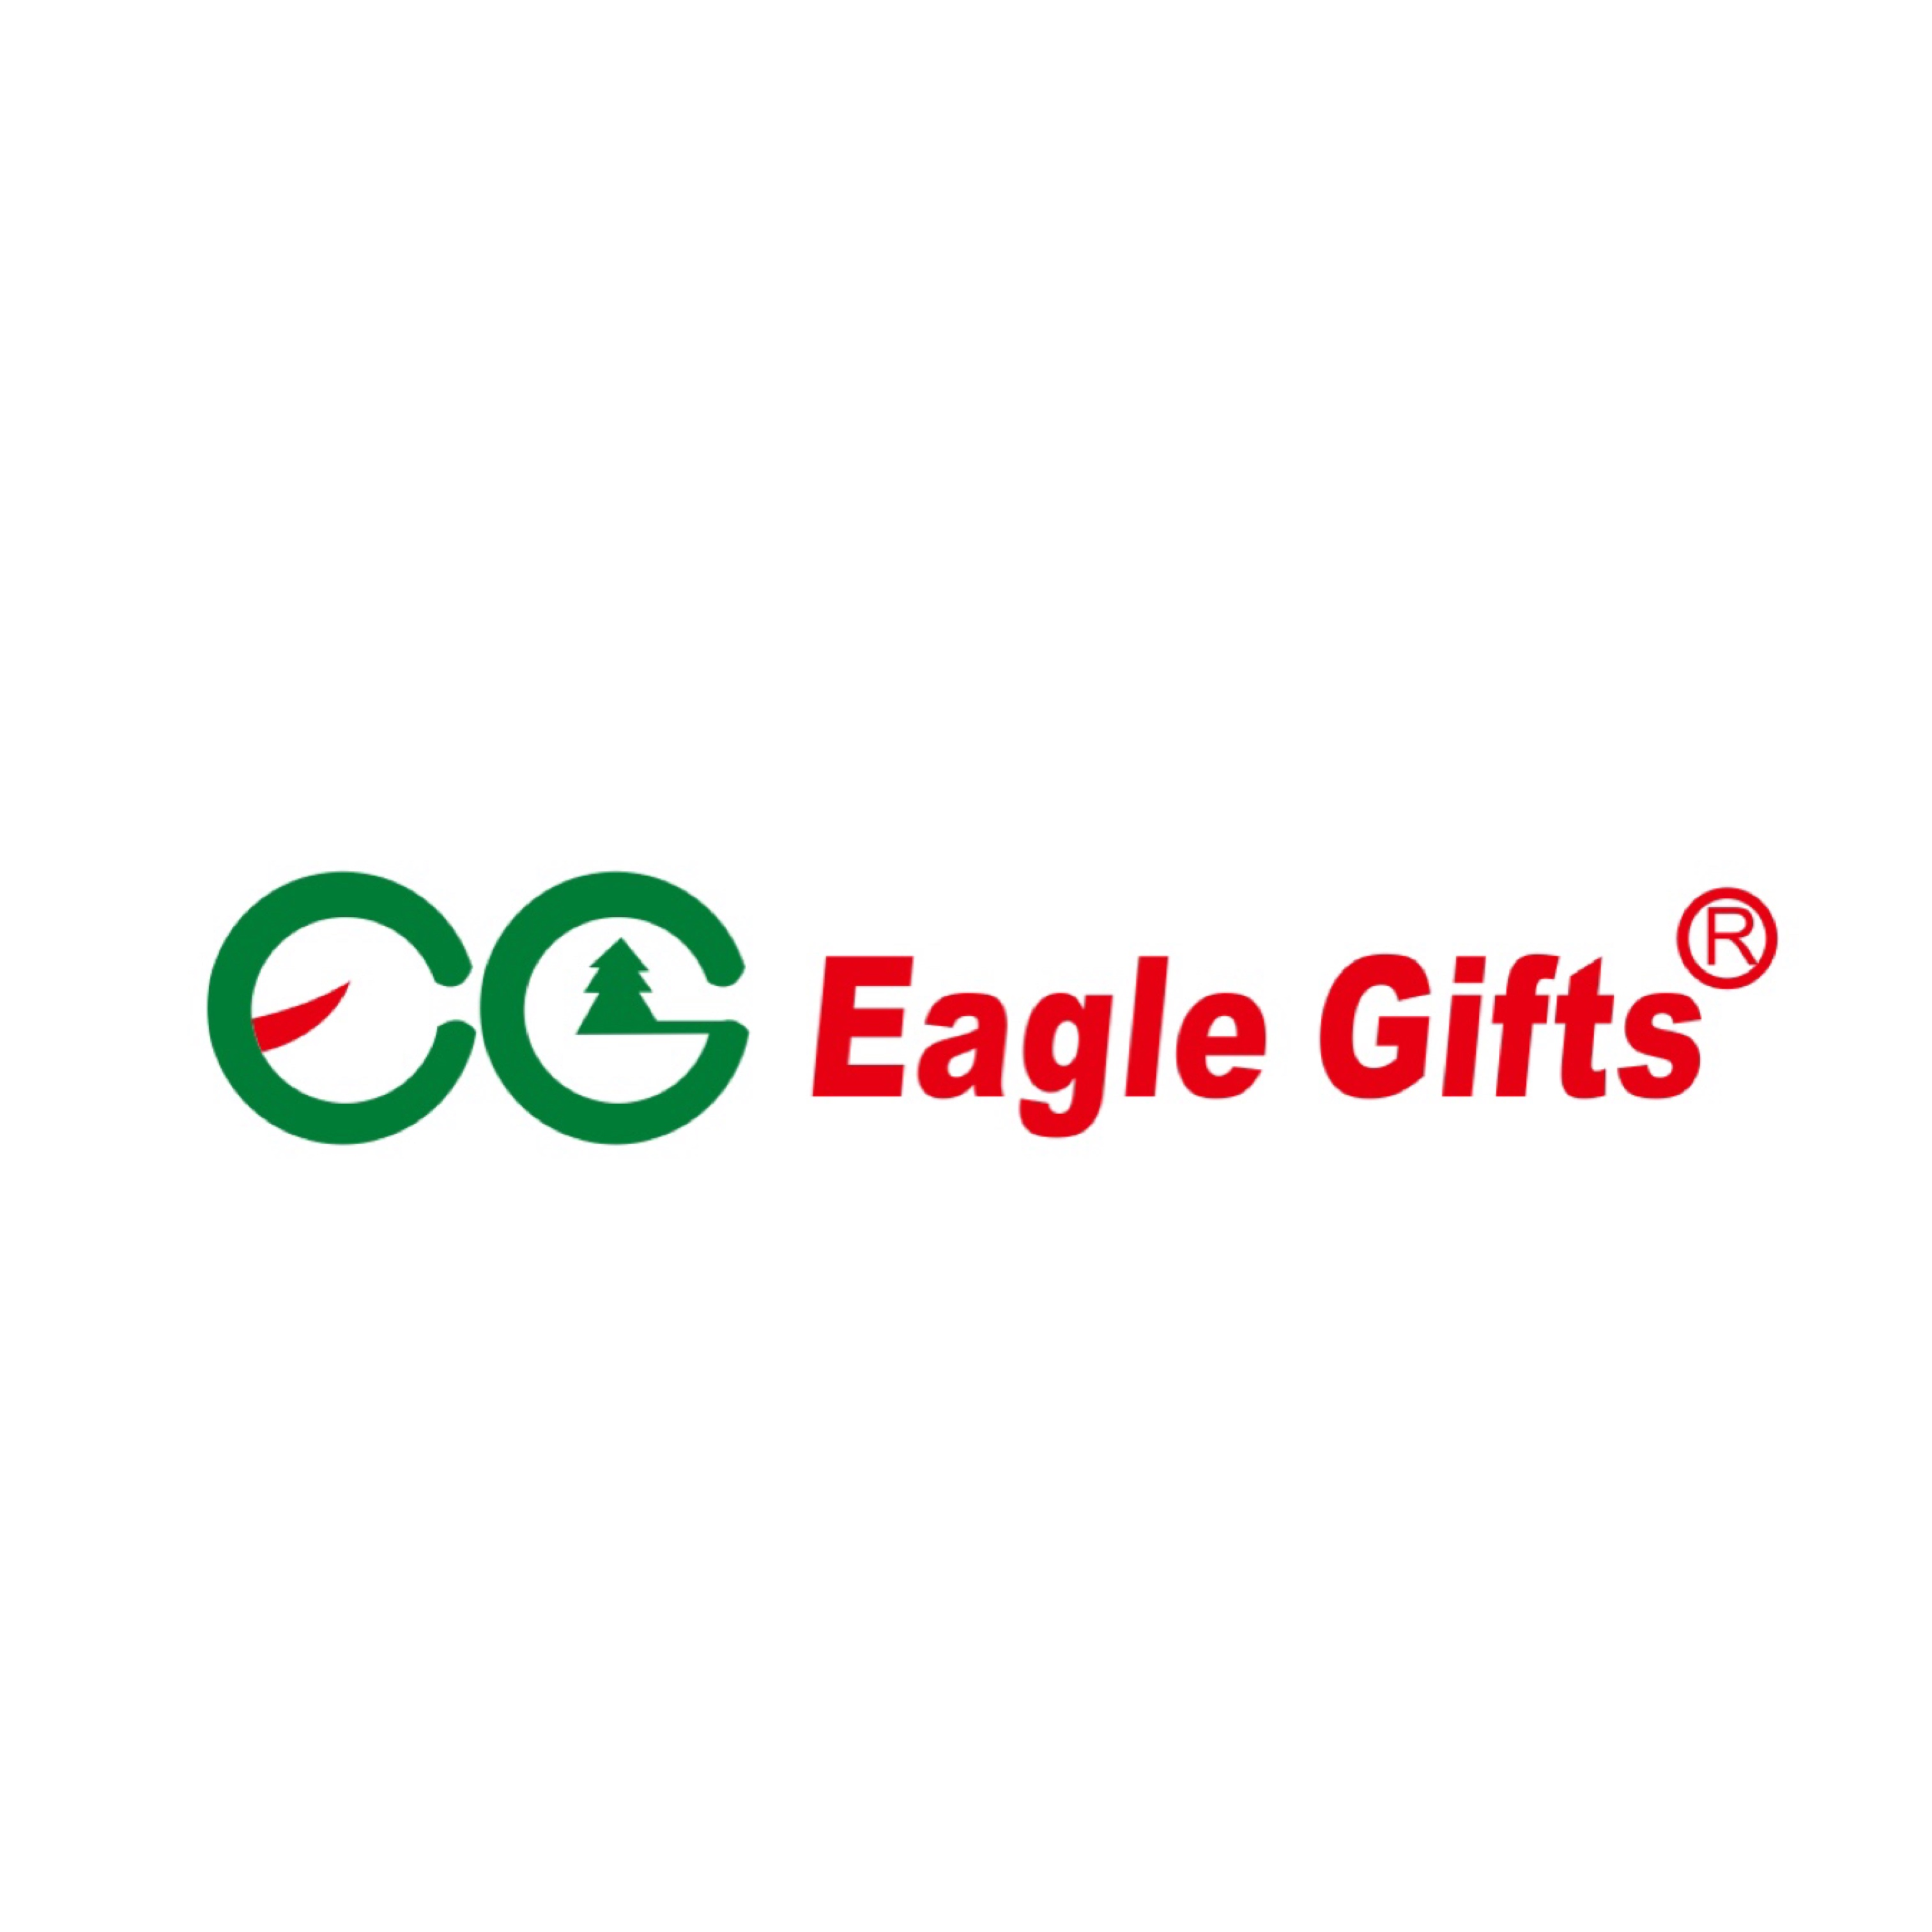 Guangdong Eagle Gifts co.ltd